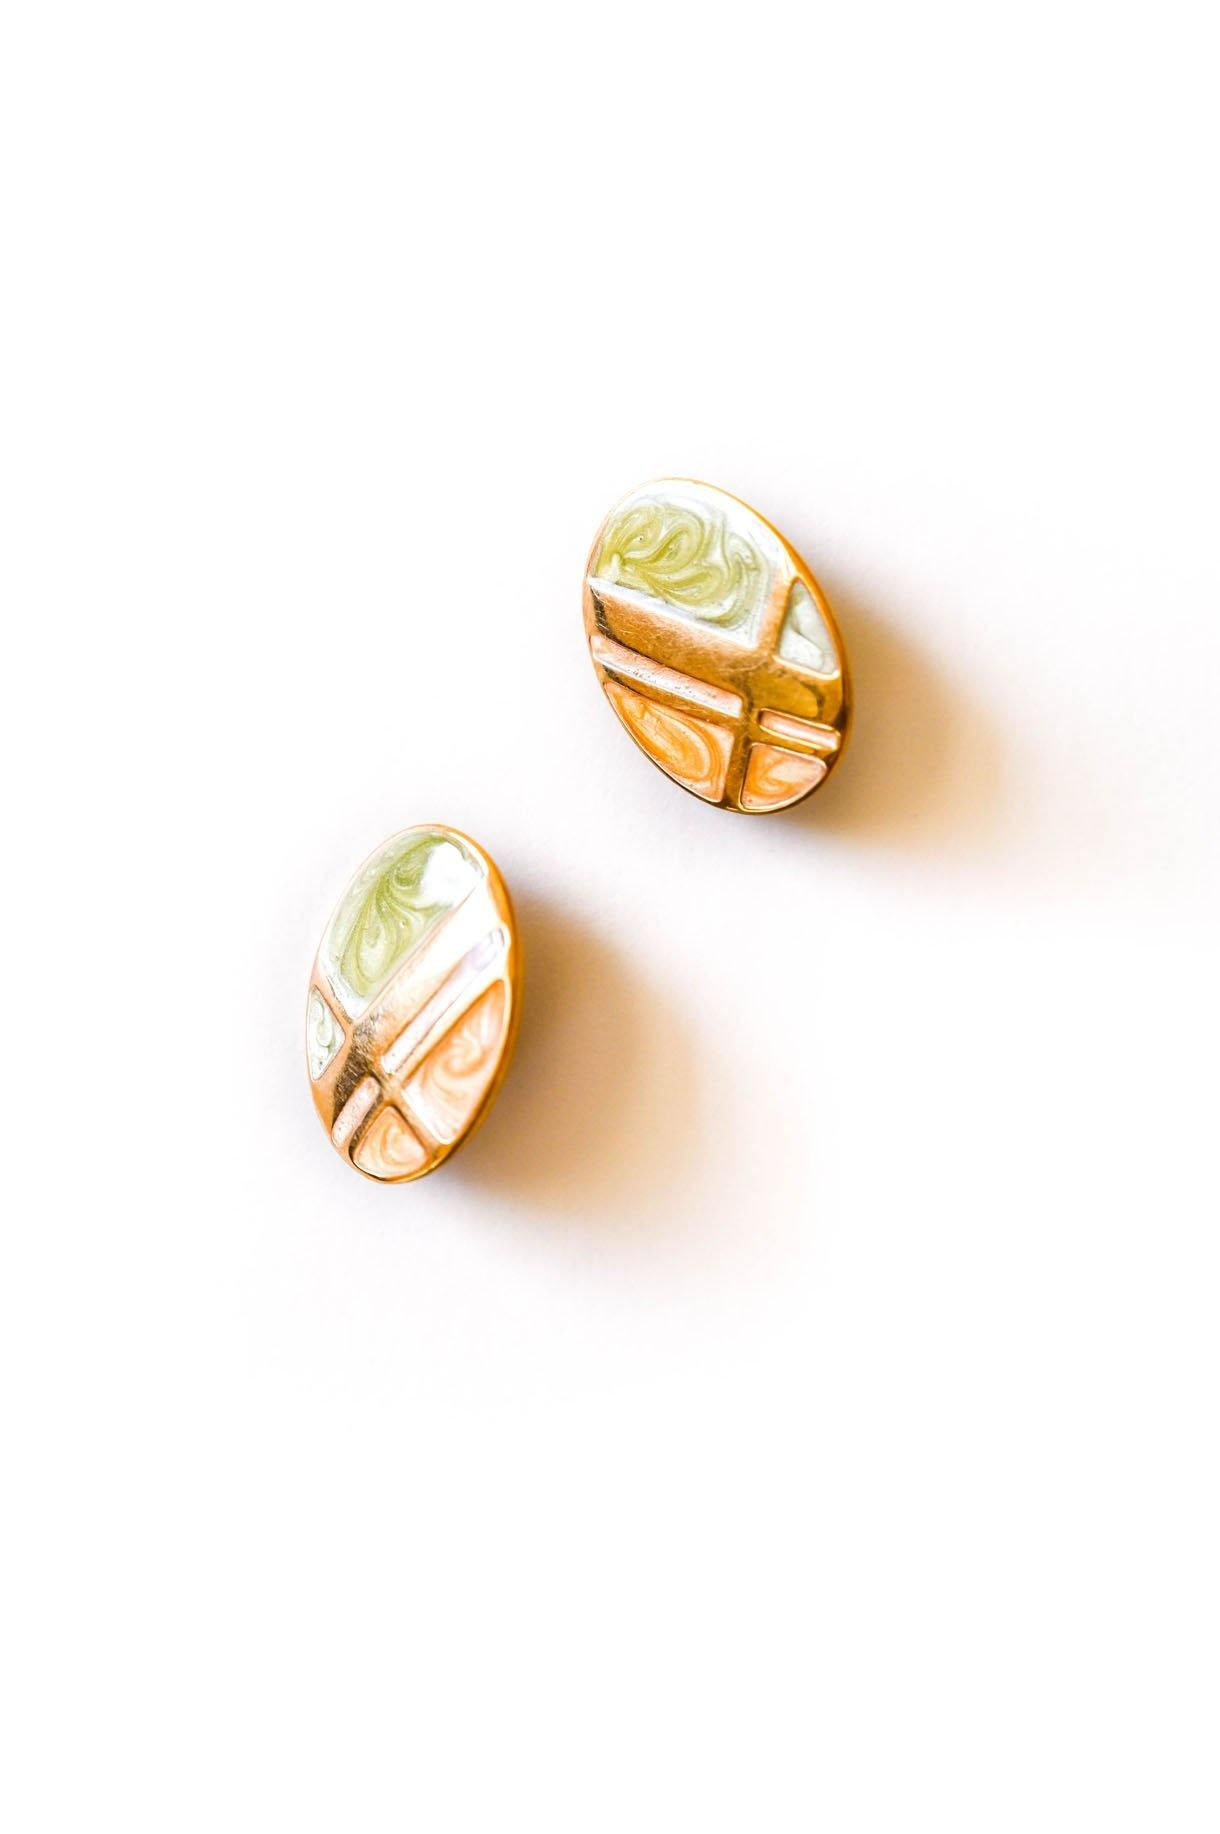 Swirled Enamel Clip-on Earrings - Sweet & Spark